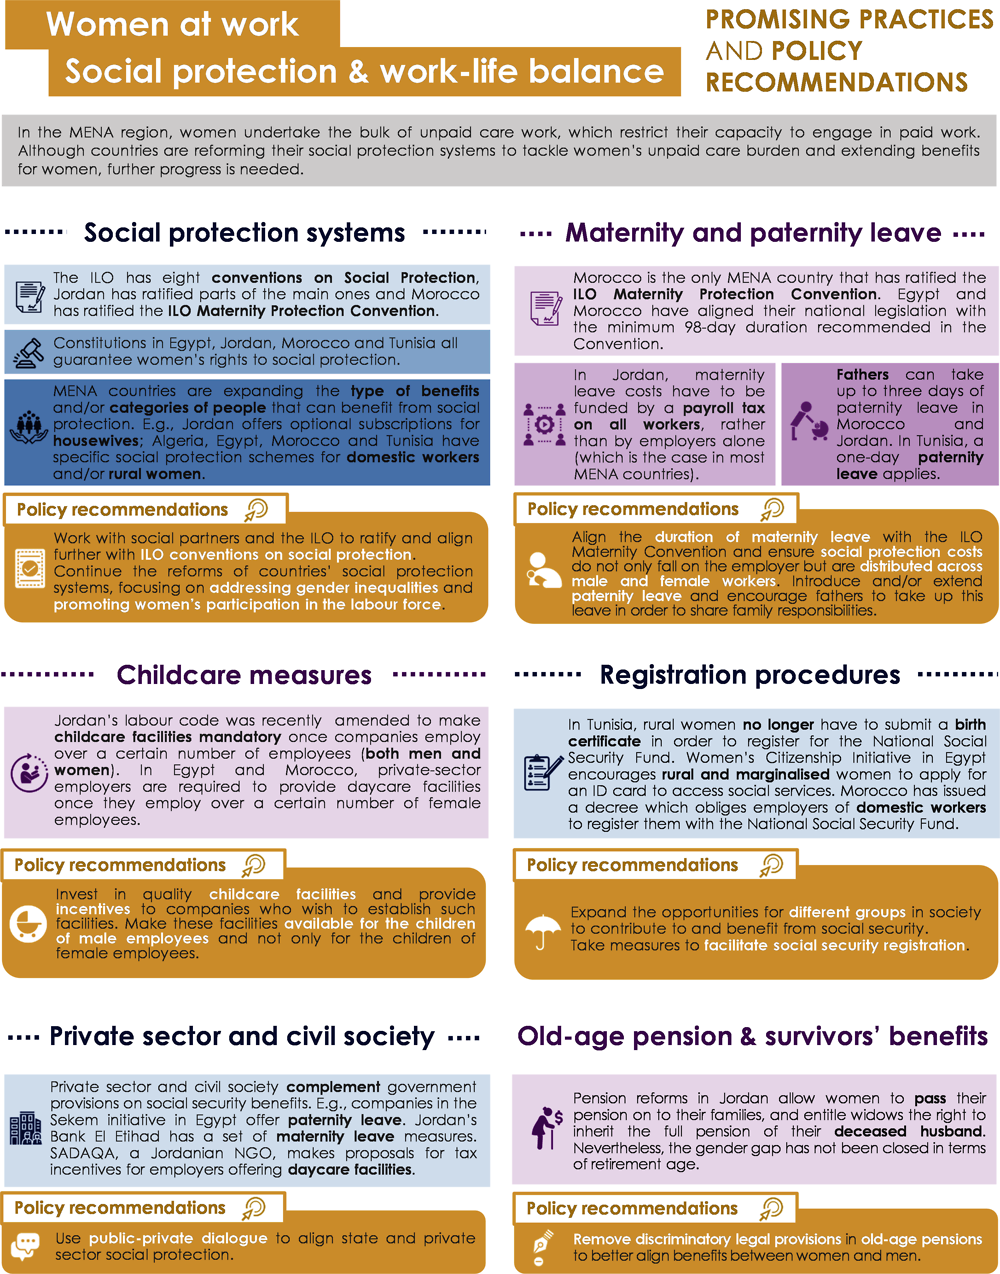 Infographic 2.2. Women at work: social protection and work and life balance